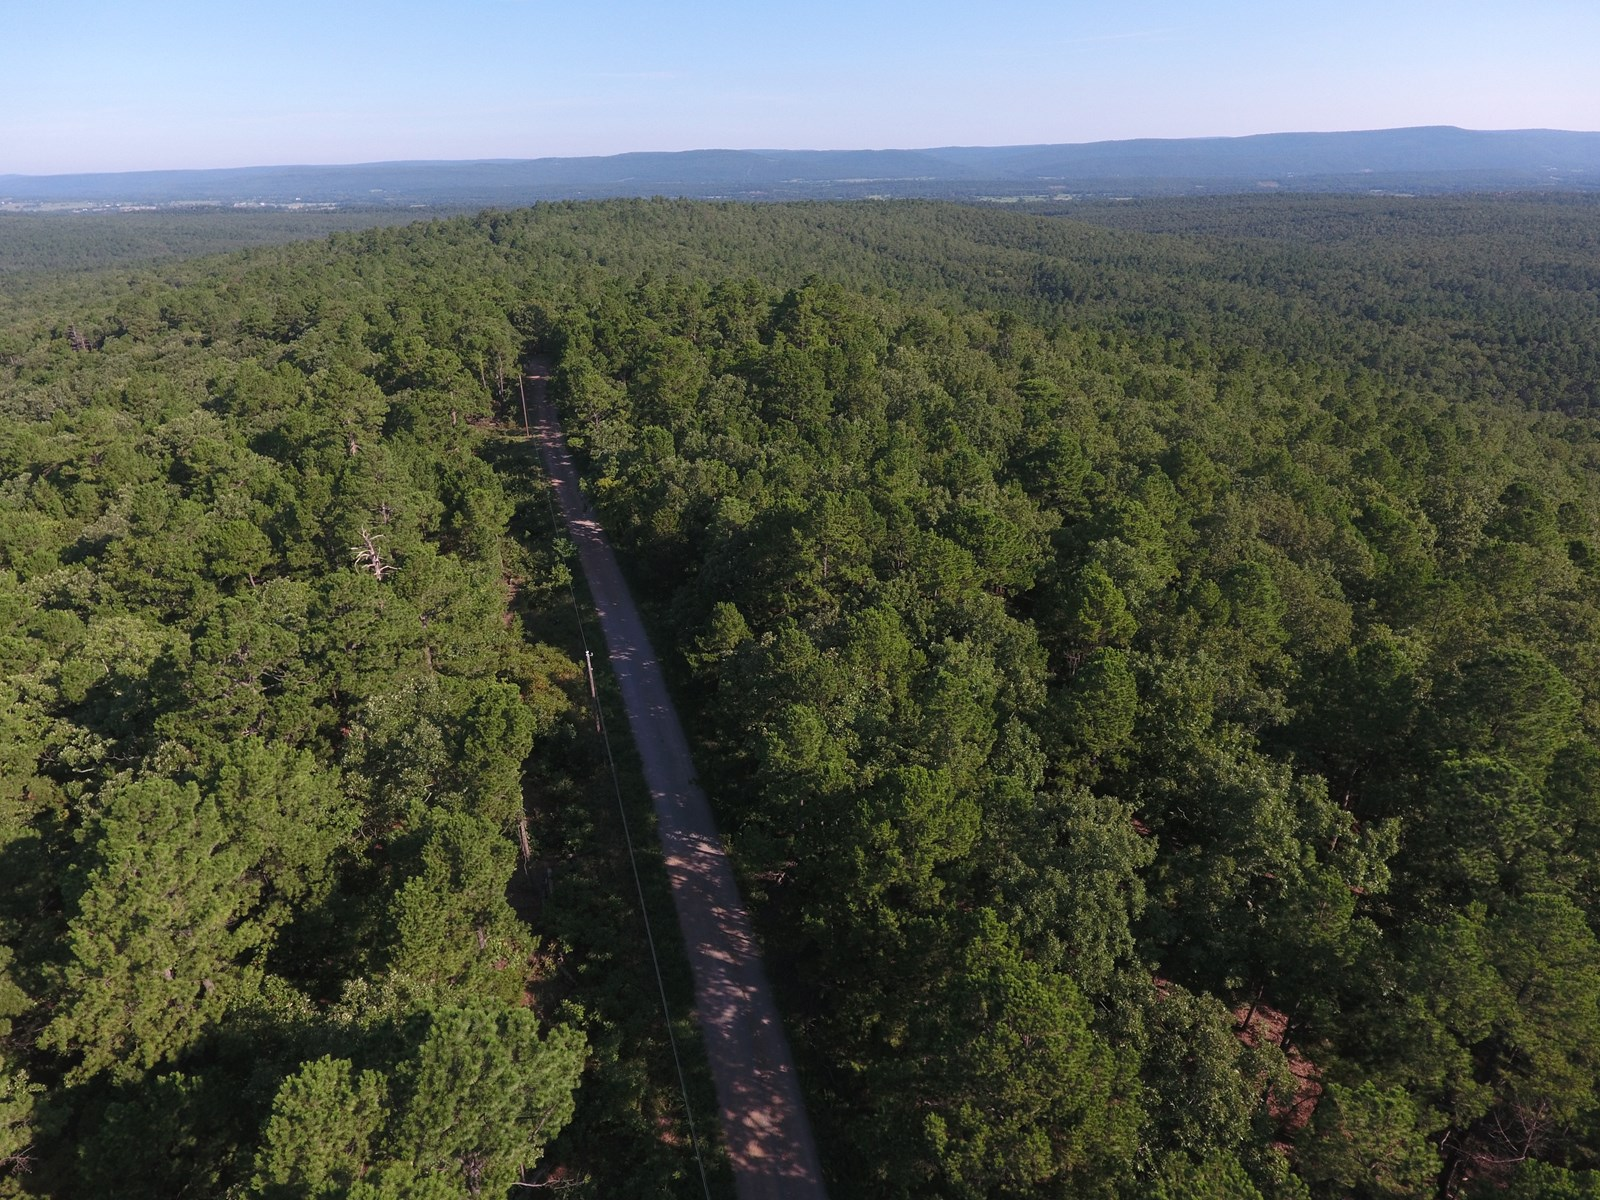 Hunting Land for sale, SE Oklahoma, Latimer County